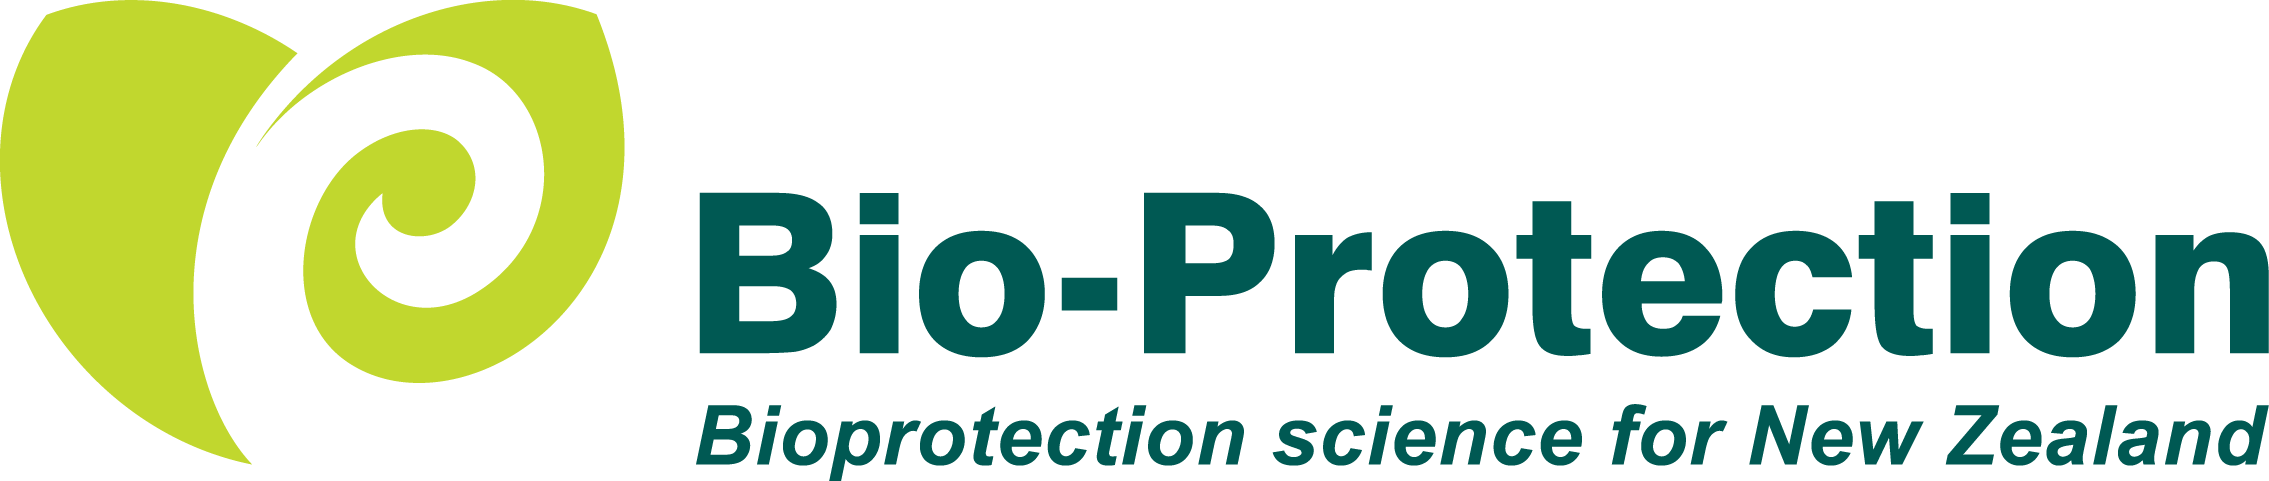 BioProtection Centre logo_green text_CMYK_2012